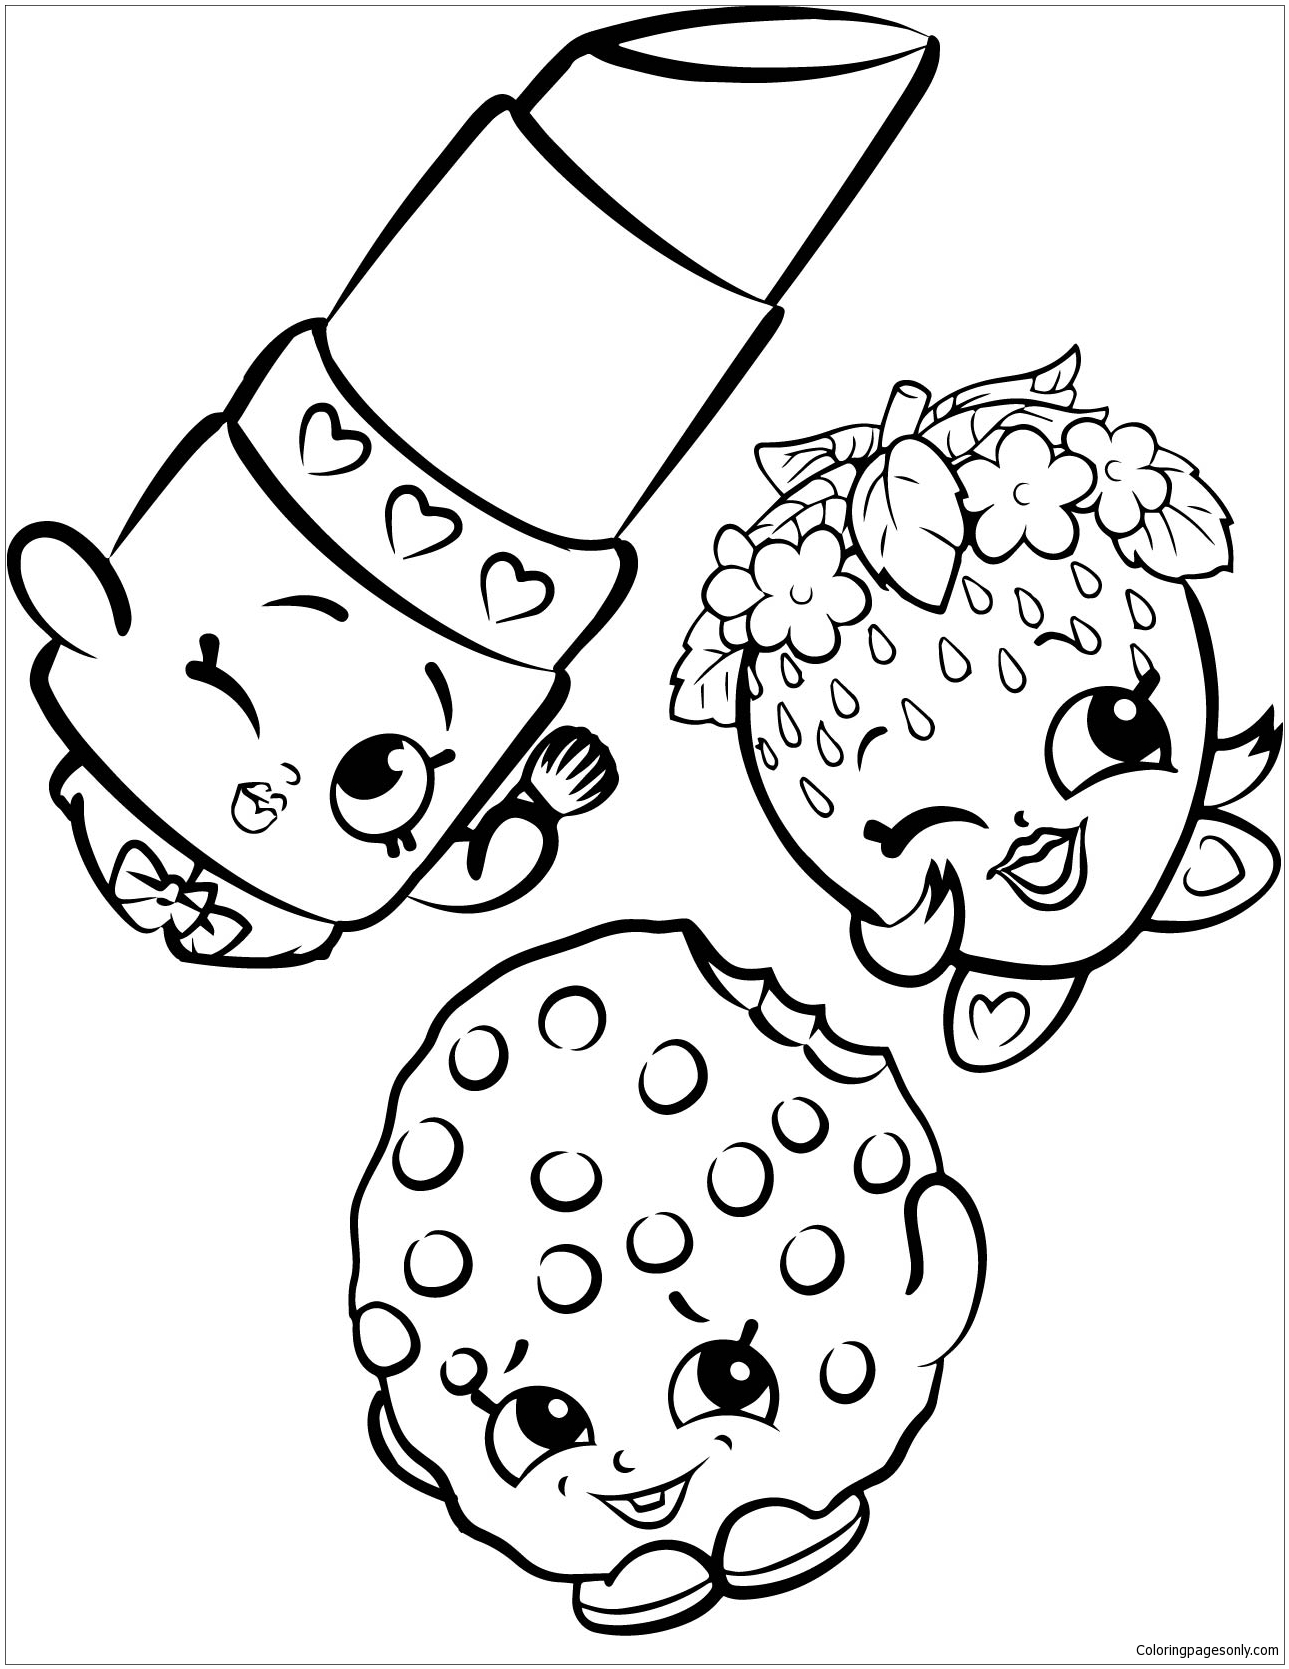 Sweet Shopkins Characters Coloring Page Free Coloring Pages Online